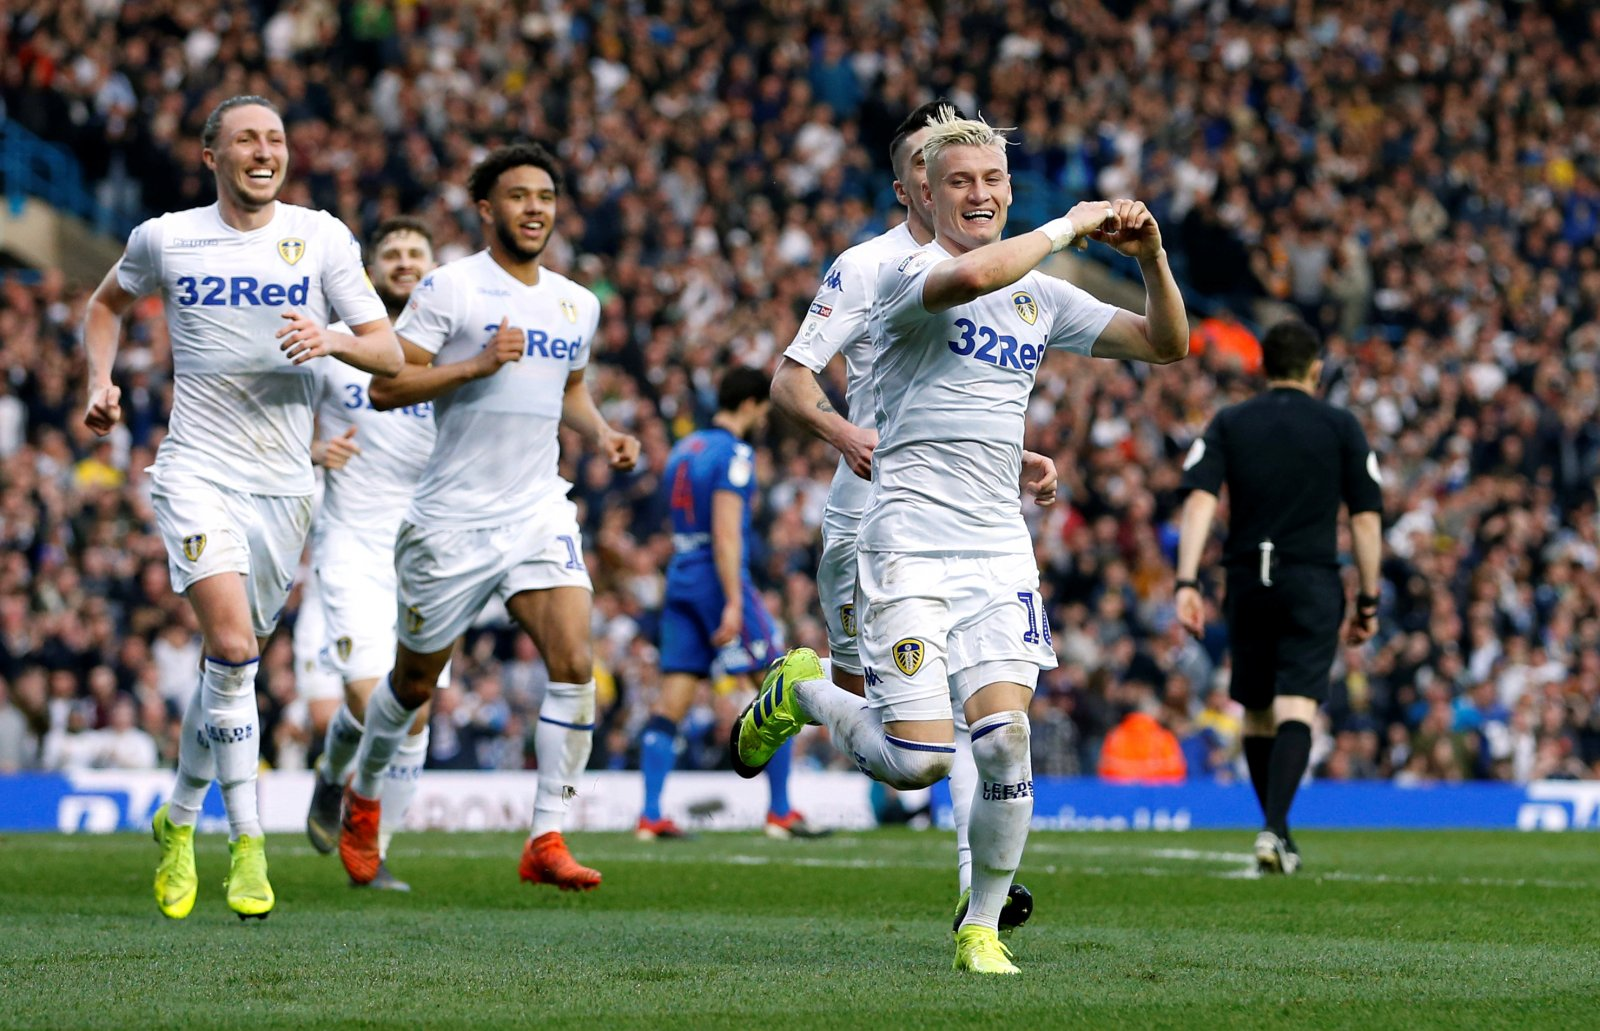 Holy Jesus', 'Great ball' – Loads of Leeds fans react to fan